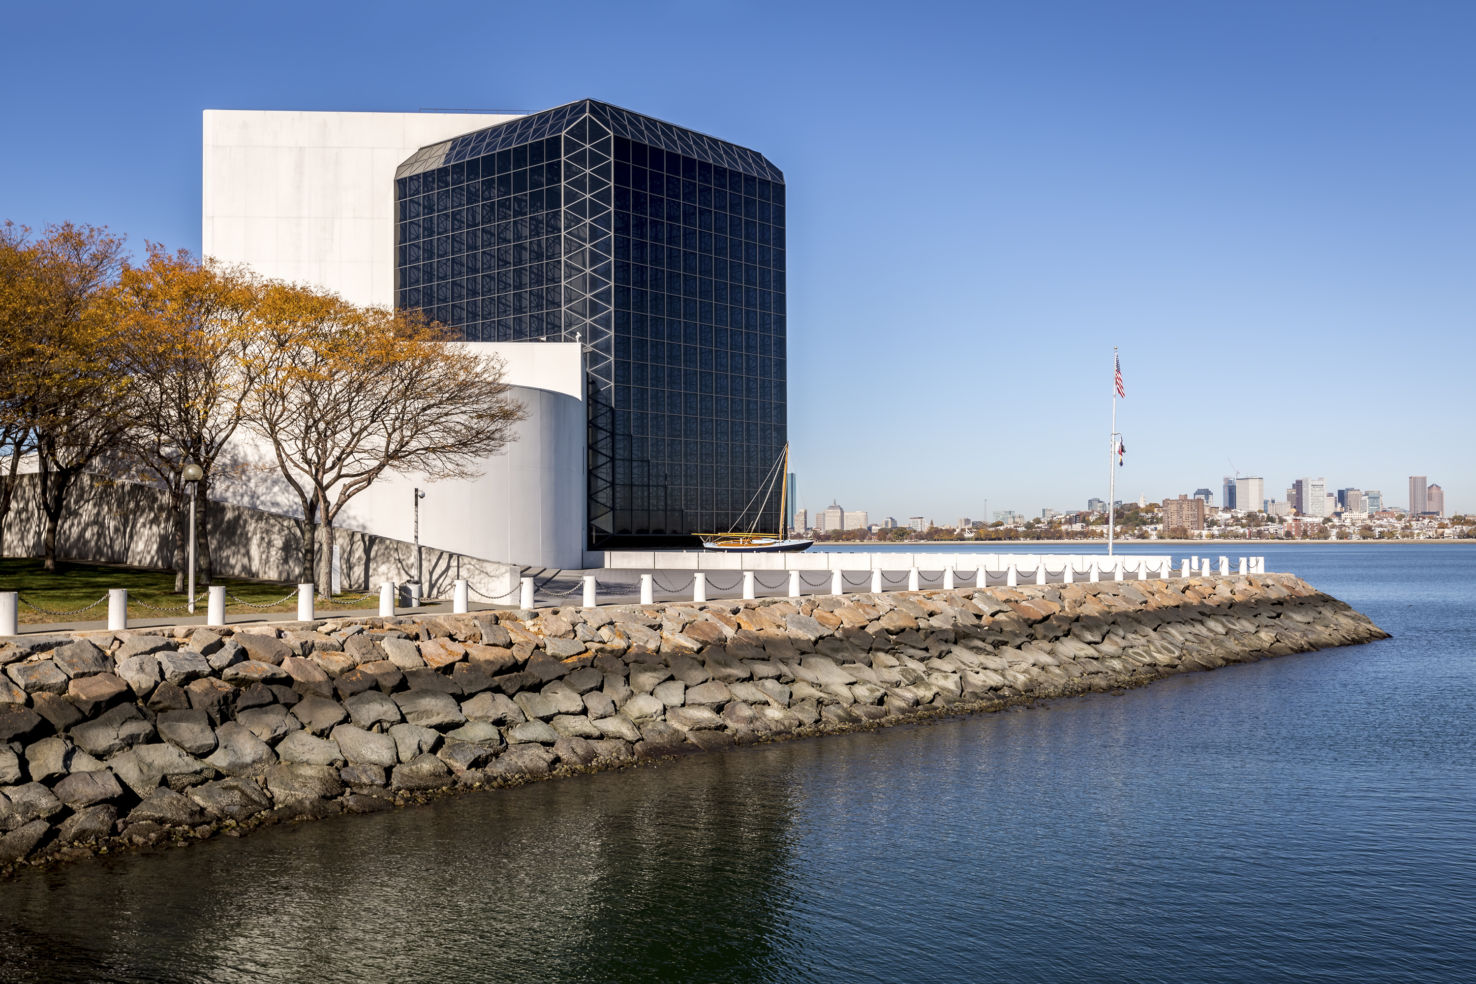 John F. Kennedy Presidential Library and Museum, JFK, Boston, Massachusetts